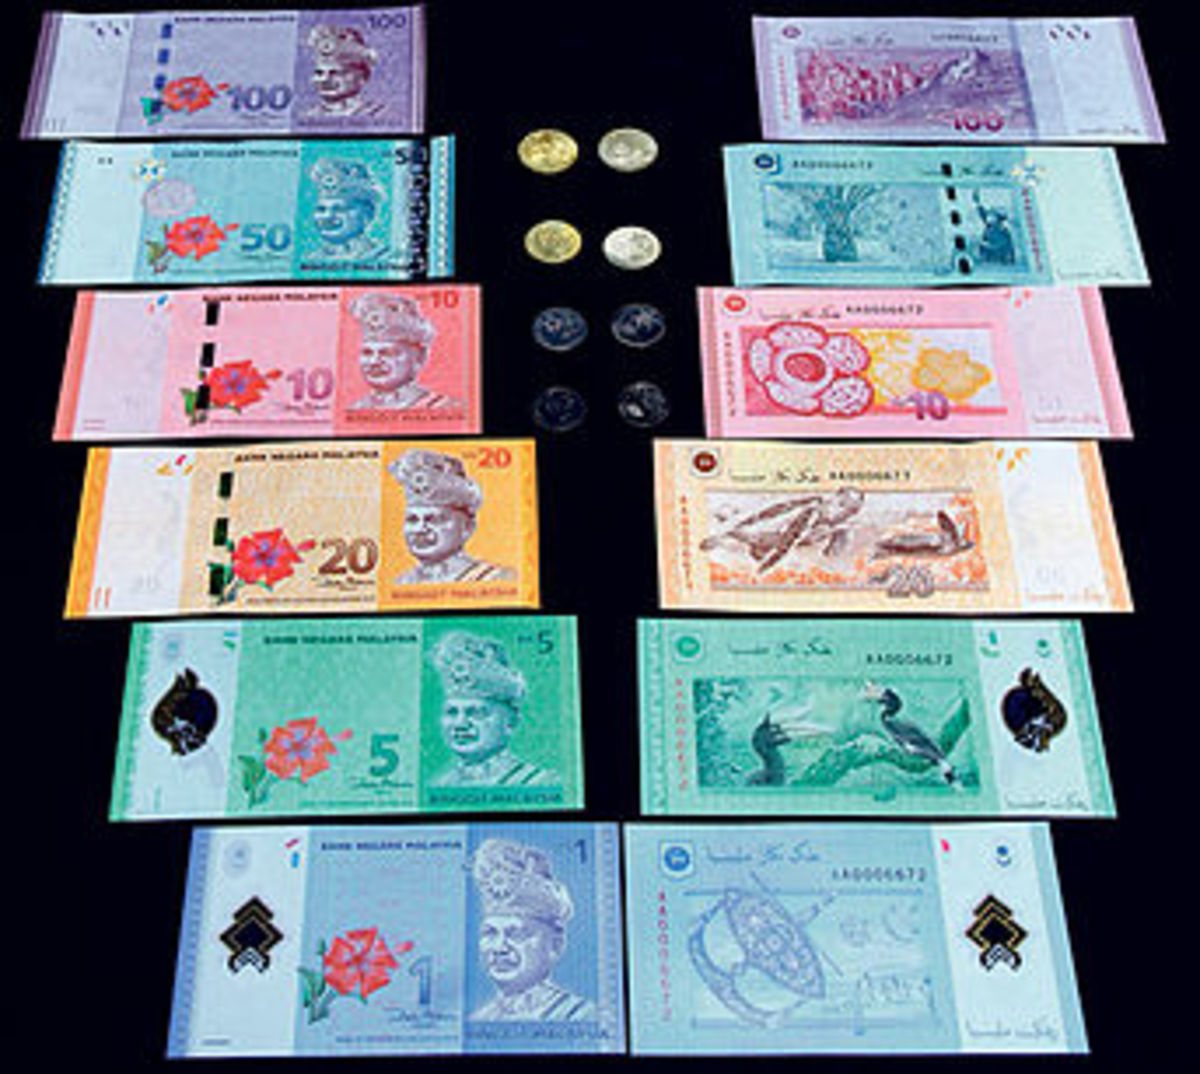 Malaysian currency, called ringgit.